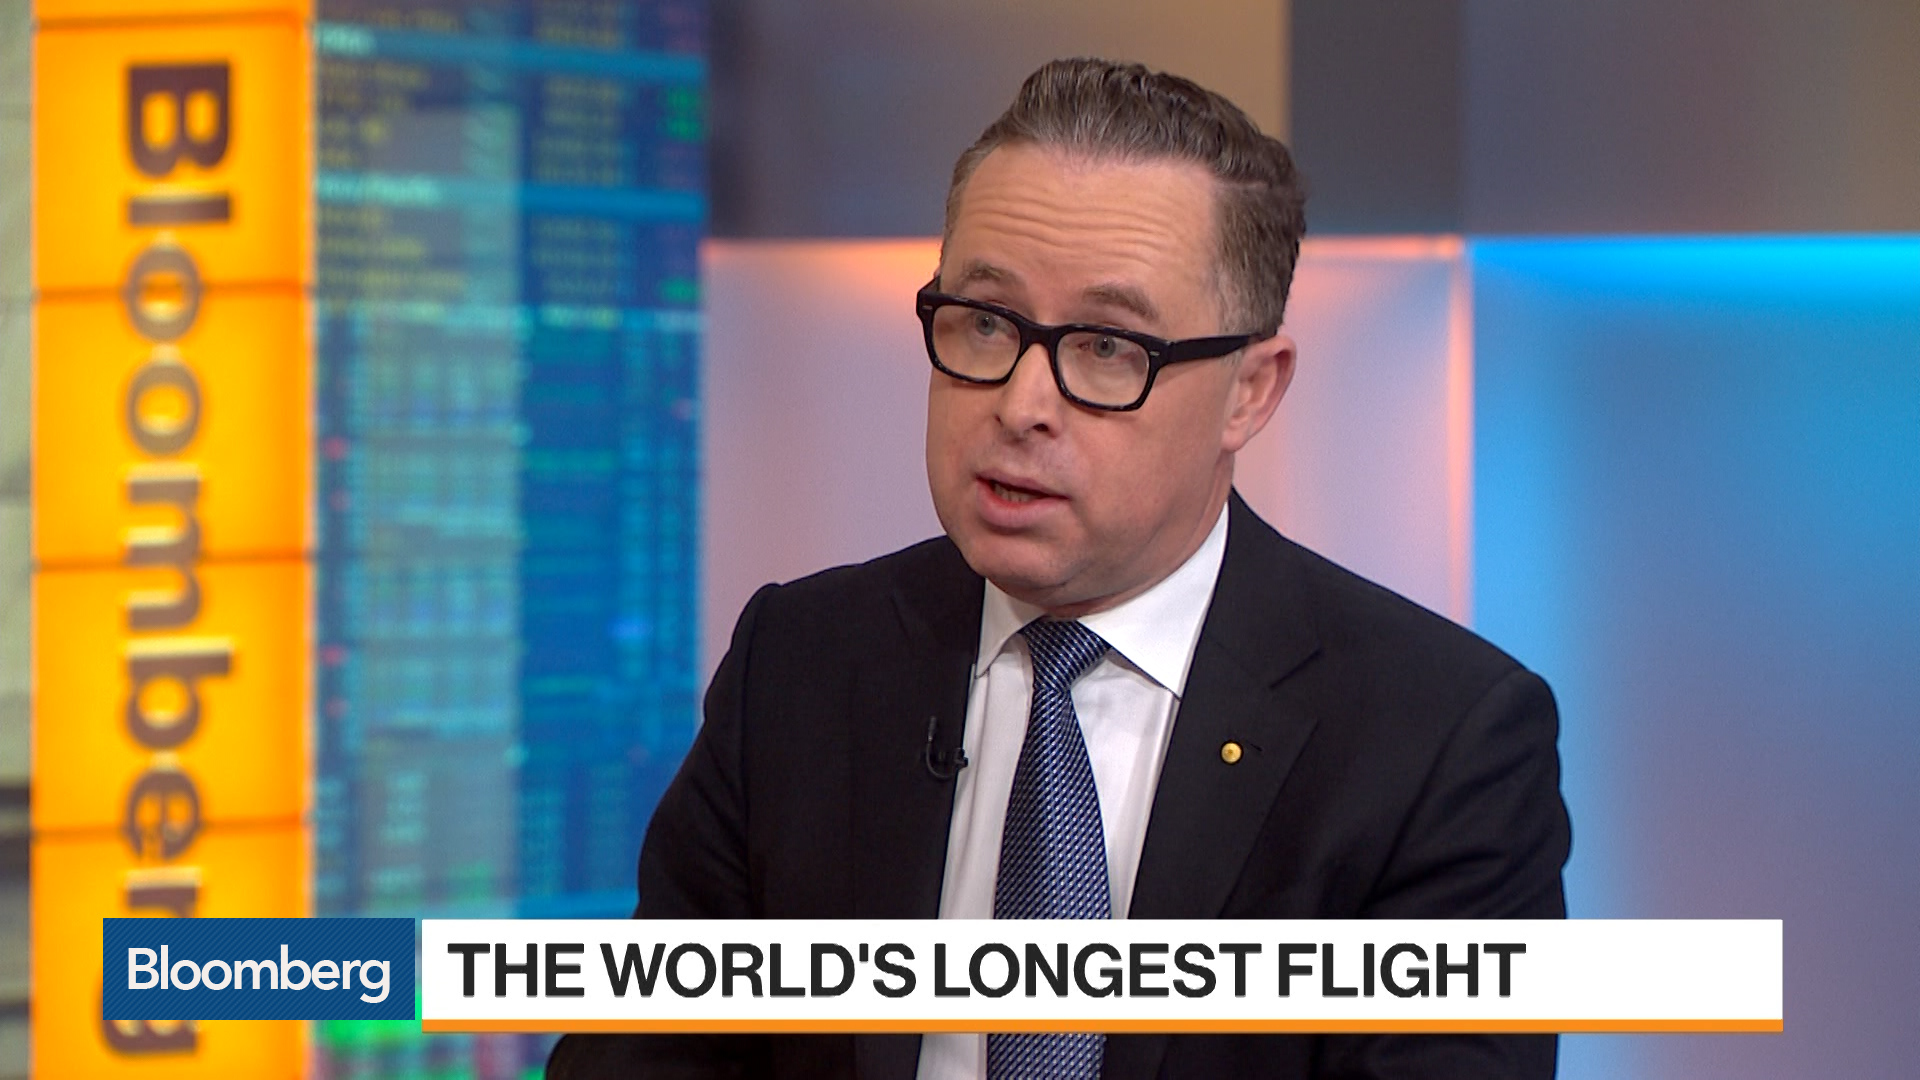 Qantas Airways CEO, Alan Joyce, Sees Demand For 20 Plus Hour Flight From New York to Sydney